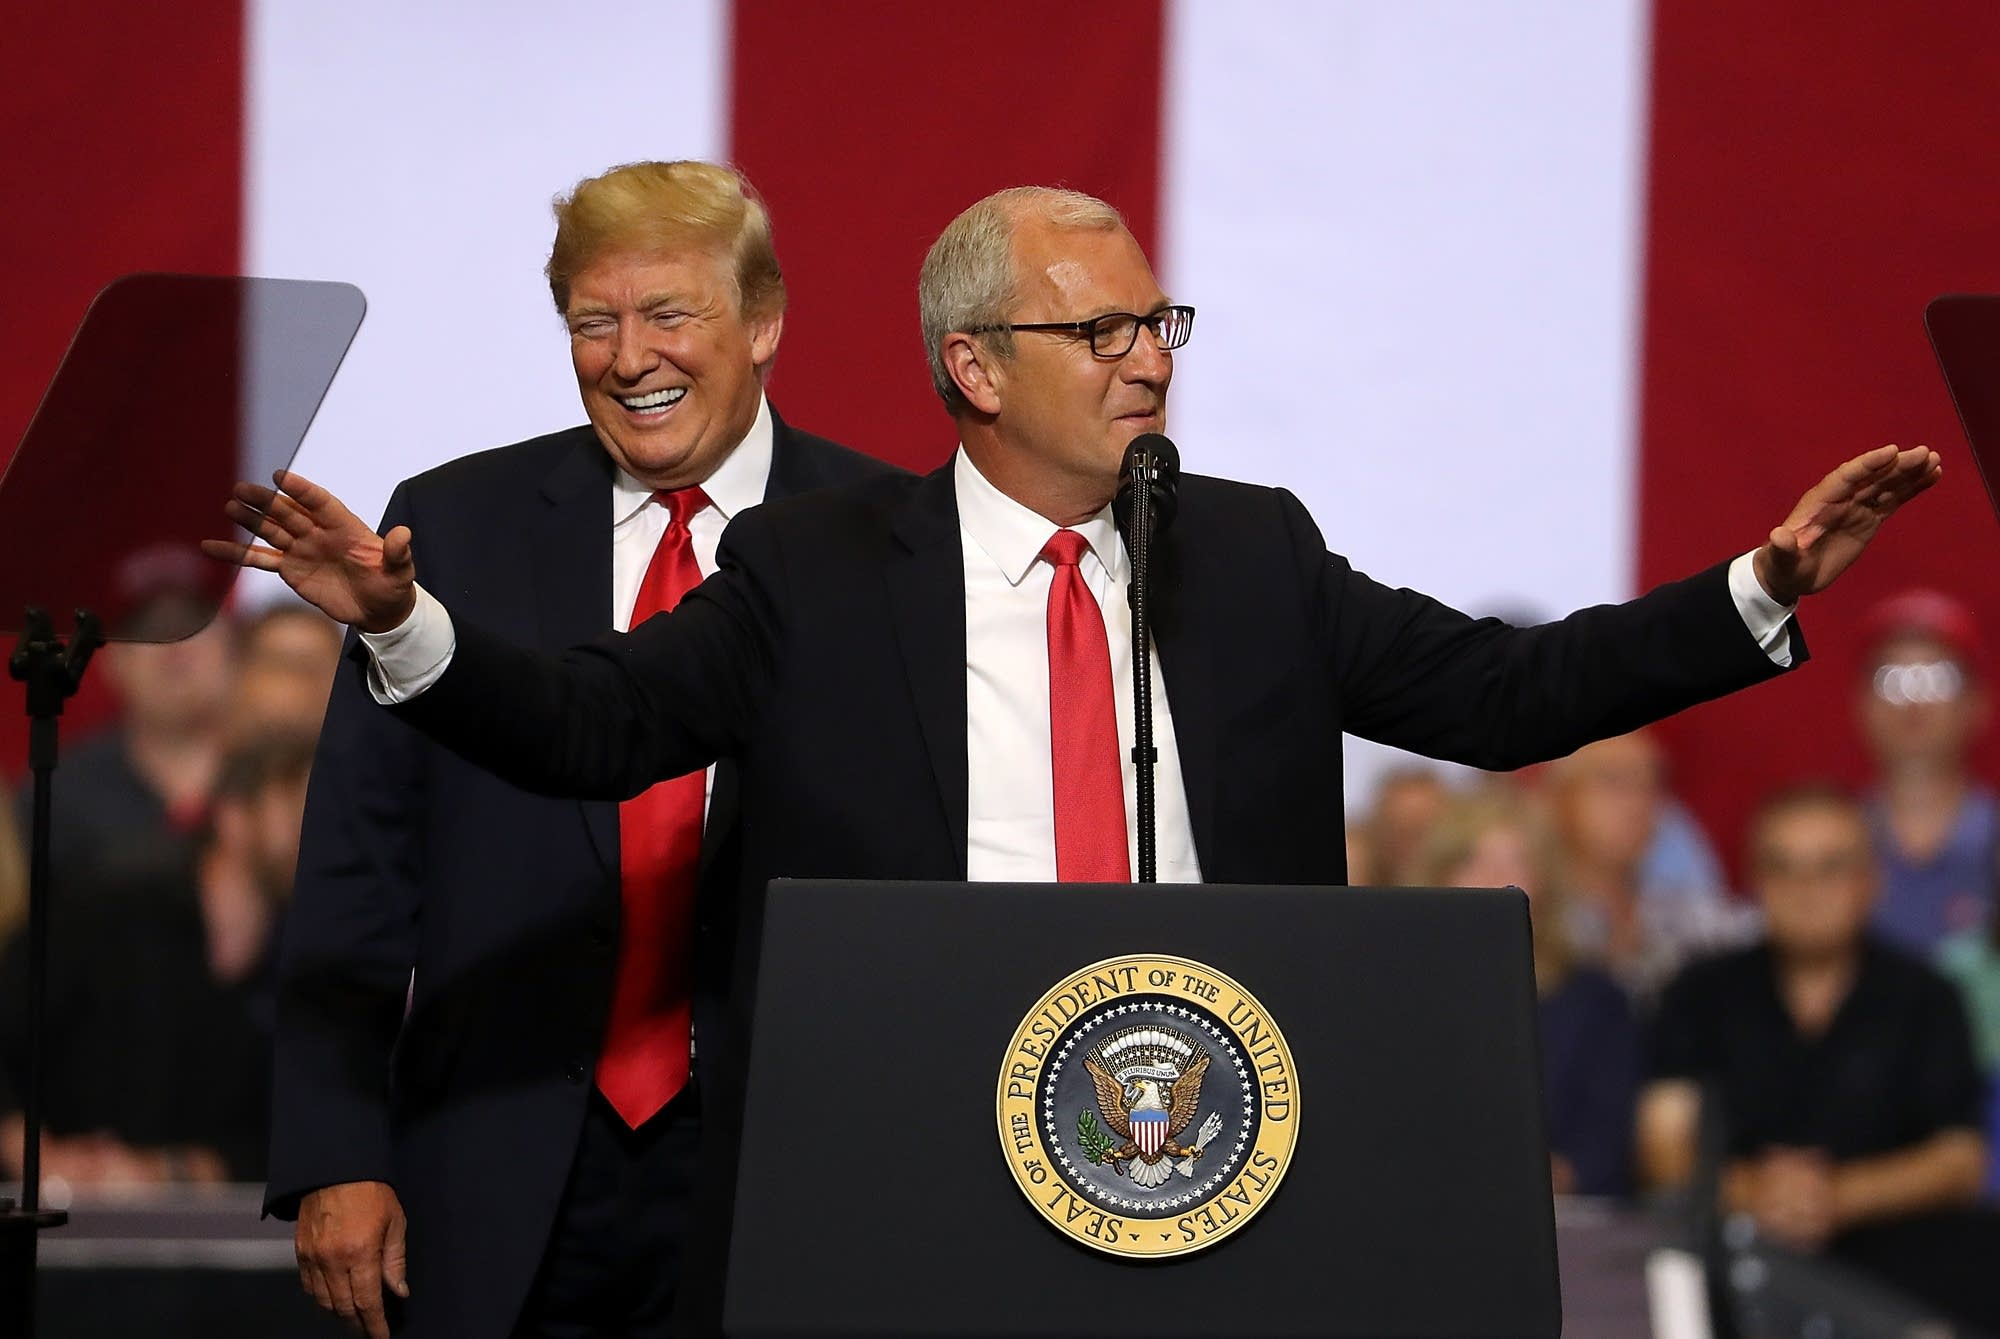 President Trump looks on as U.S. Rep. Kevin Cramer speaks to supporters.